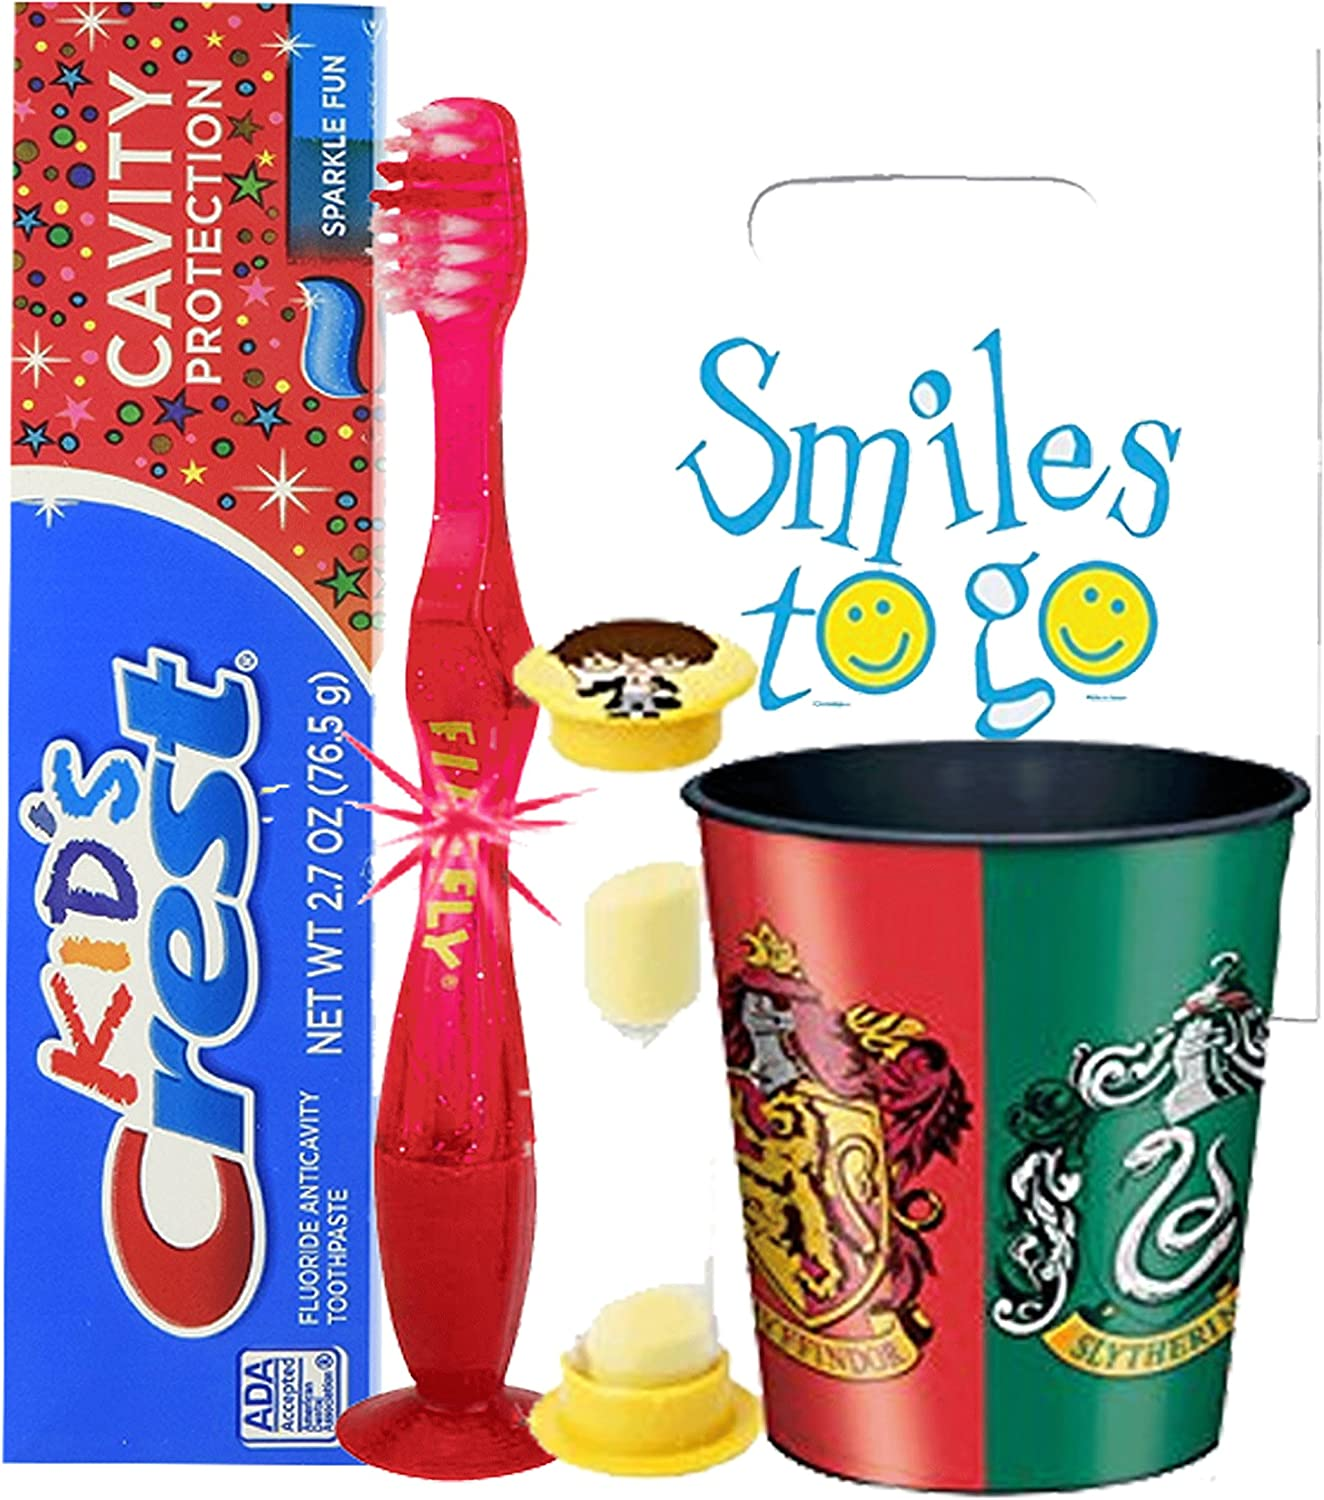 Harry Potter Inspired 4pc Bright Max 64% OFF Smile Hygiene Ligh Oral Bundle Max 90% OFF